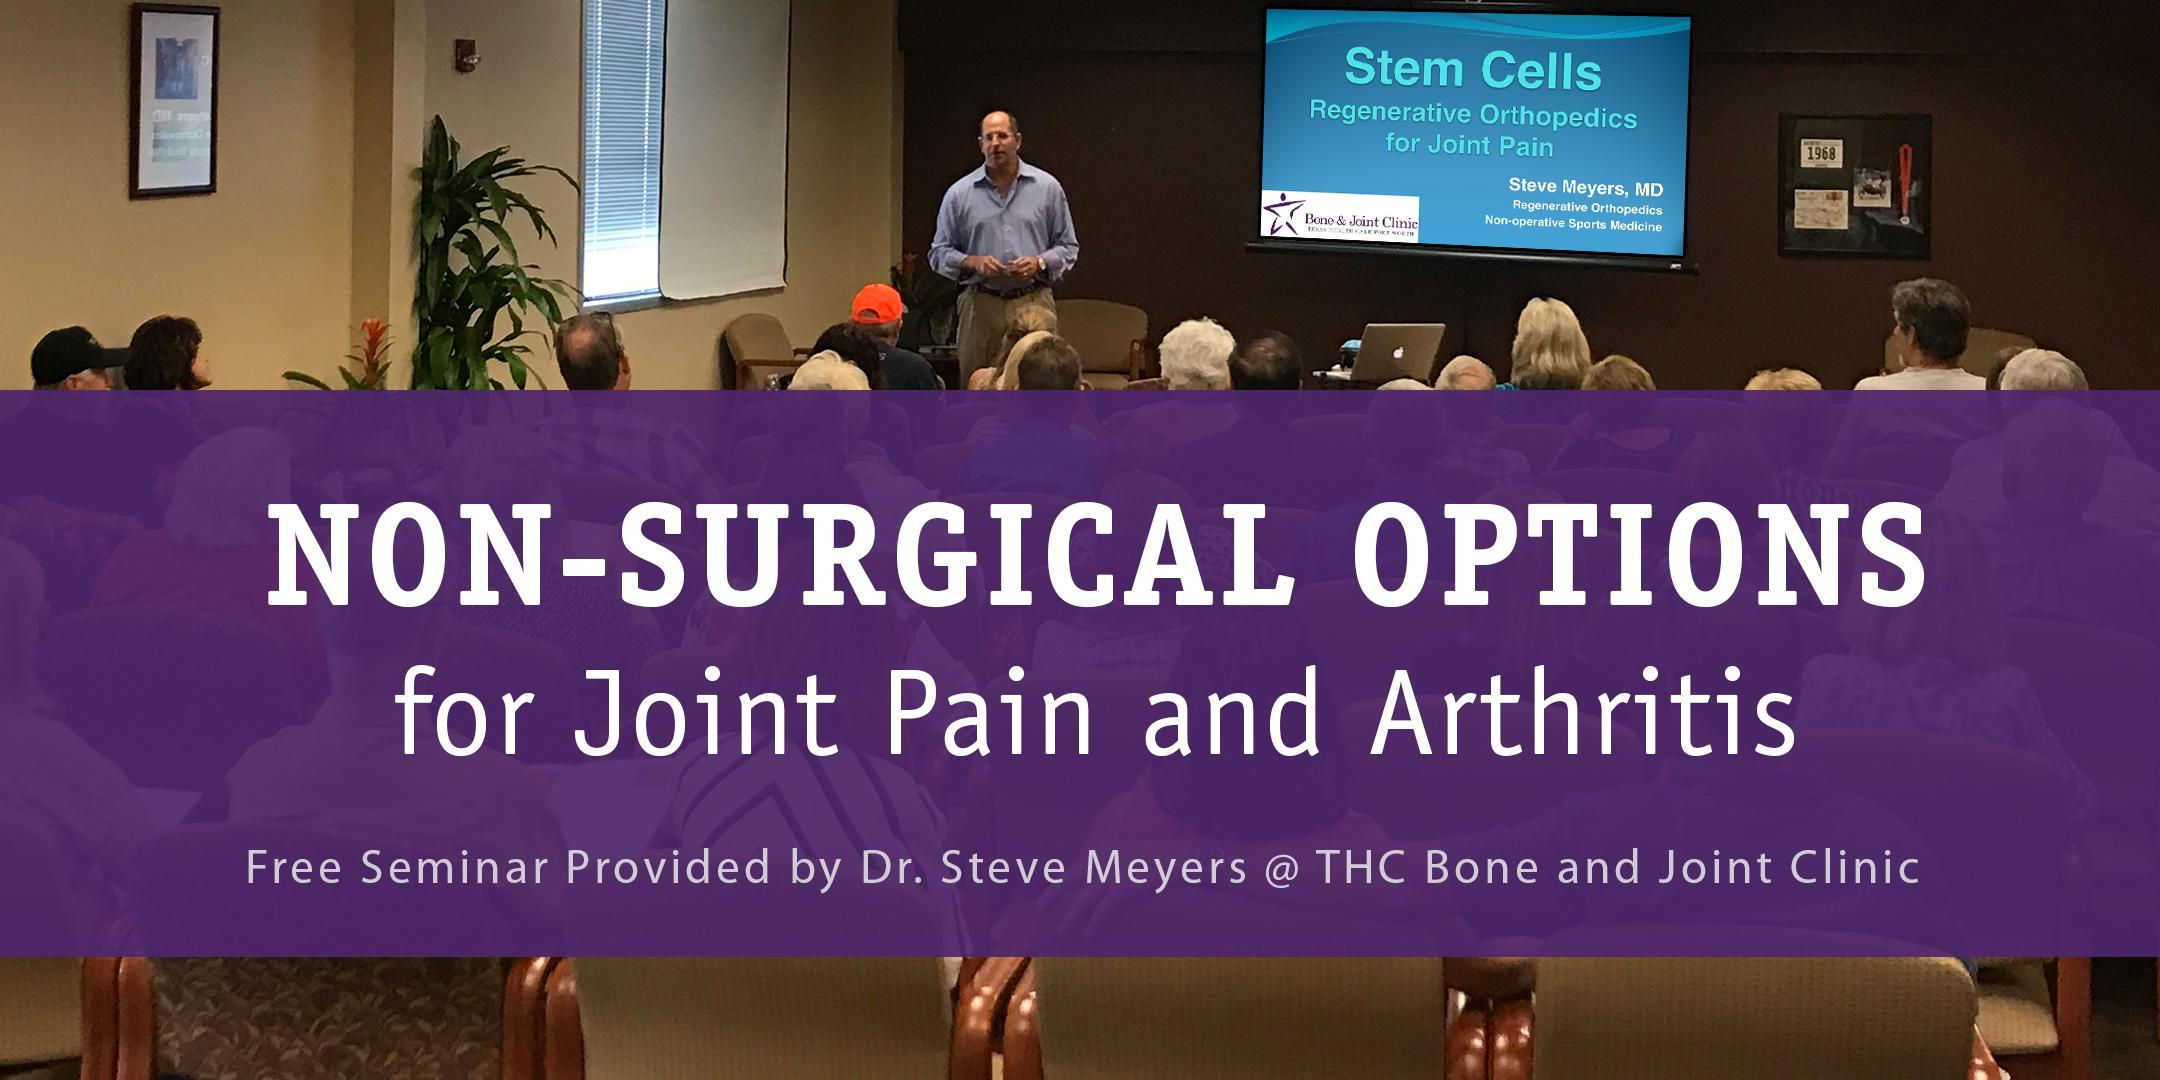 FREE SEMINAR: Non-surgical Options for Joint